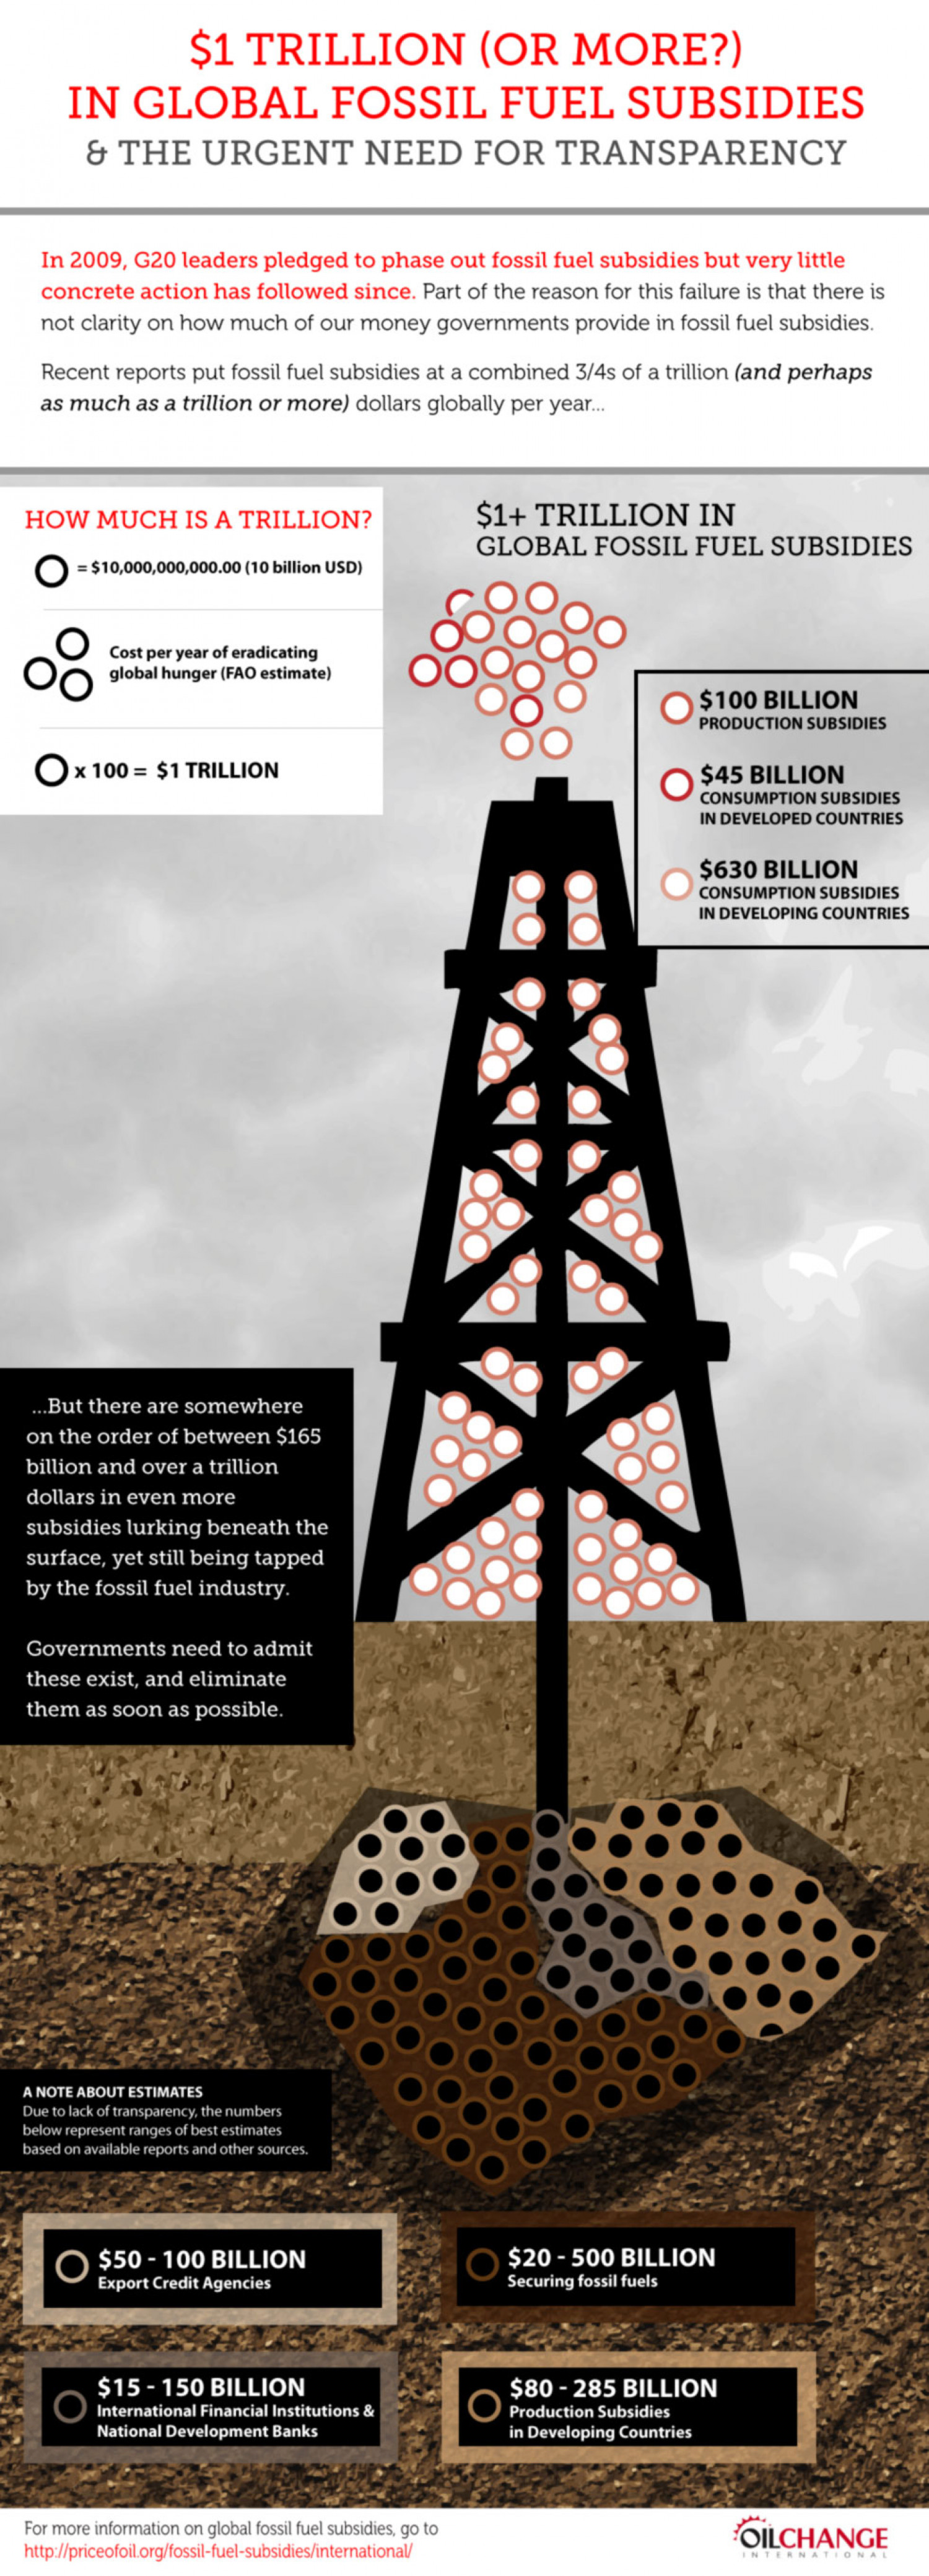 $1+ Trillion in Global Fossil Fuel Subsidies Infographic